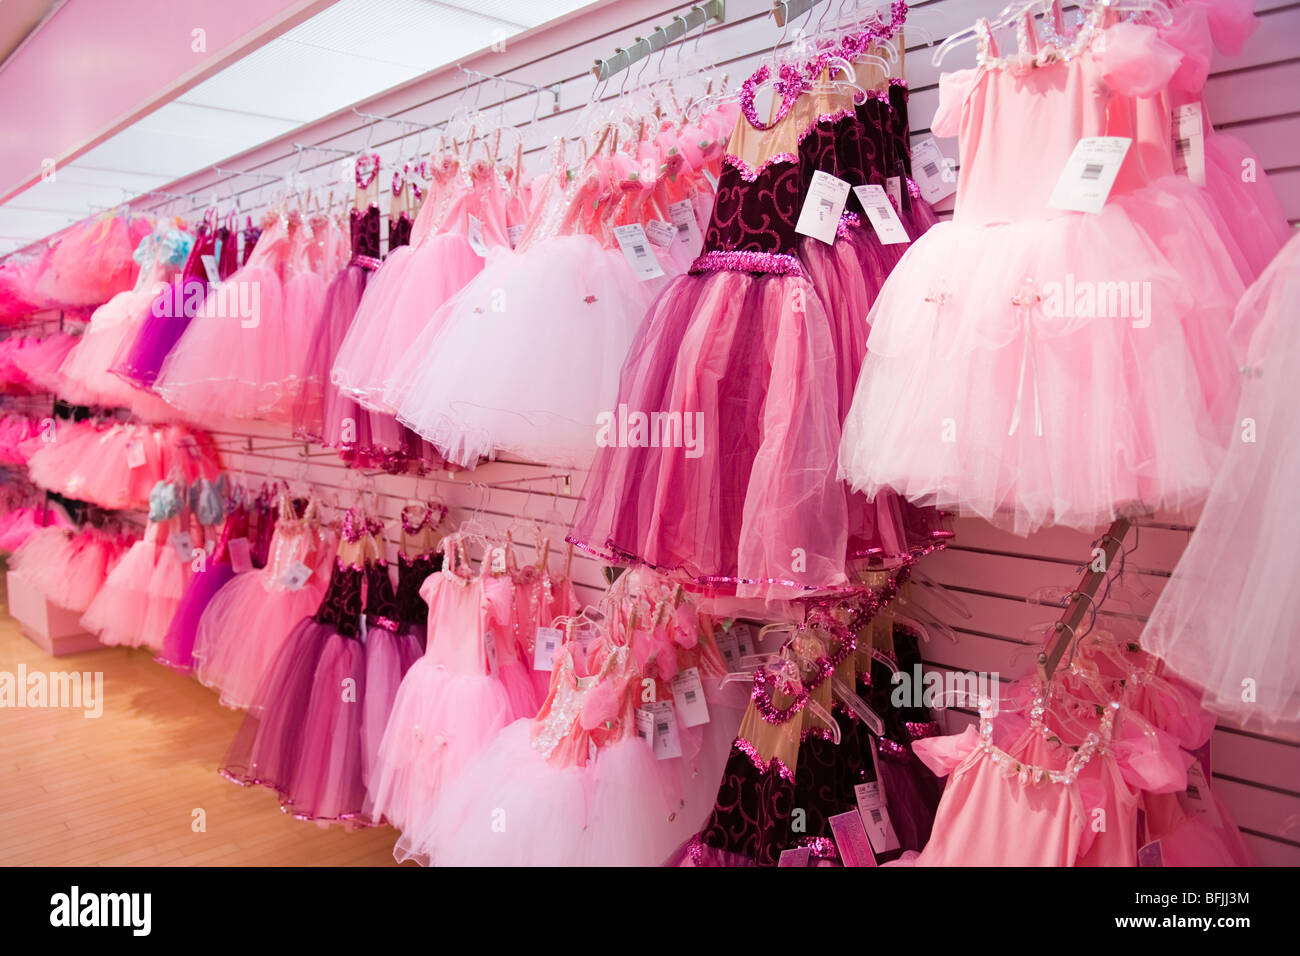 New York City The Big Apple F A O Schwarz toy store or shop princess dresses skirts & shawls in pretty pink - Stock Image